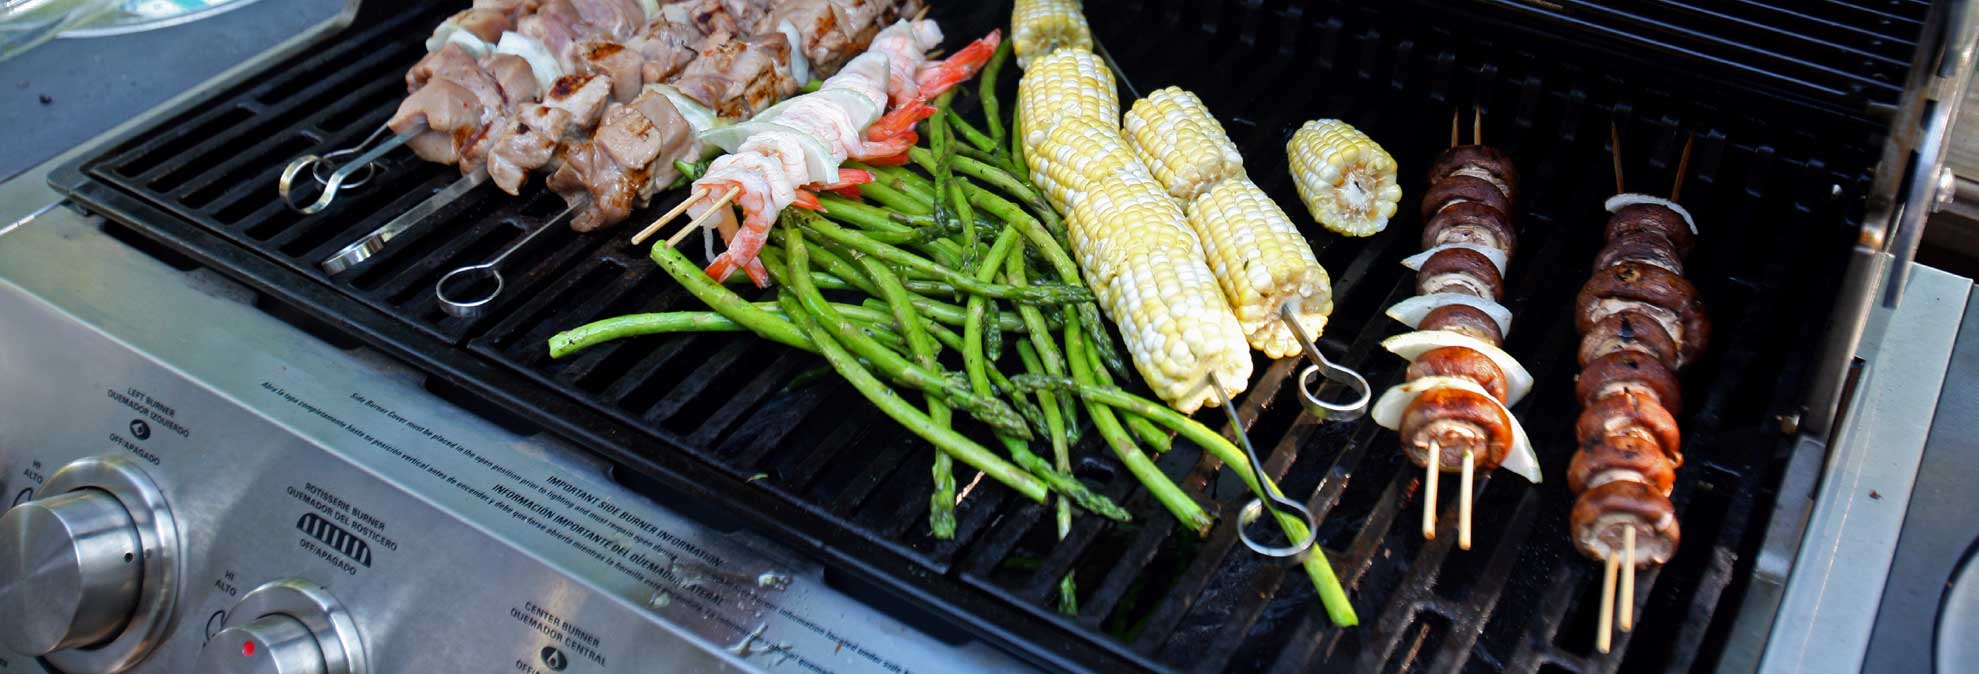 best gas grill buying guide consumer reports